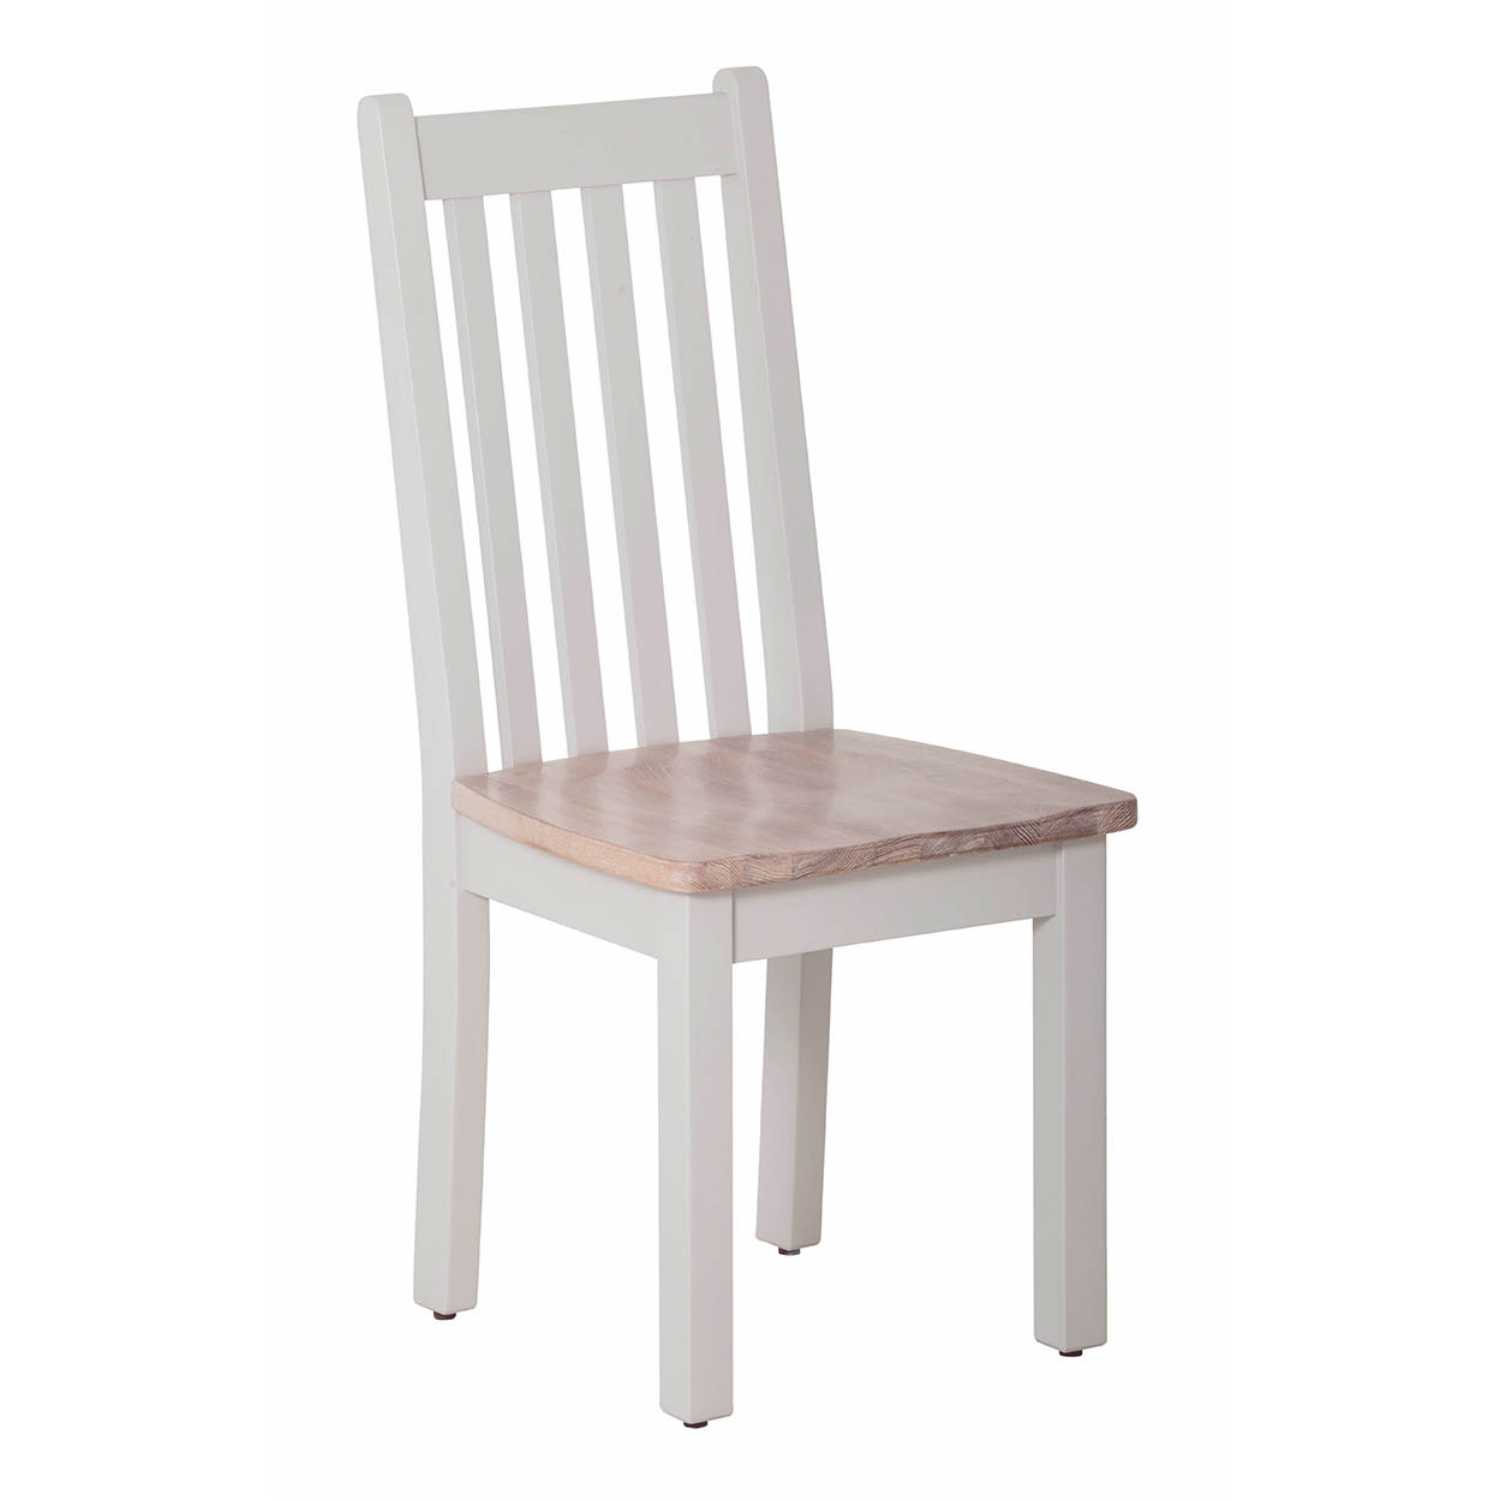 Rosa Top Light Grey Painted Vertical Slats Dining Chair Timber Seat